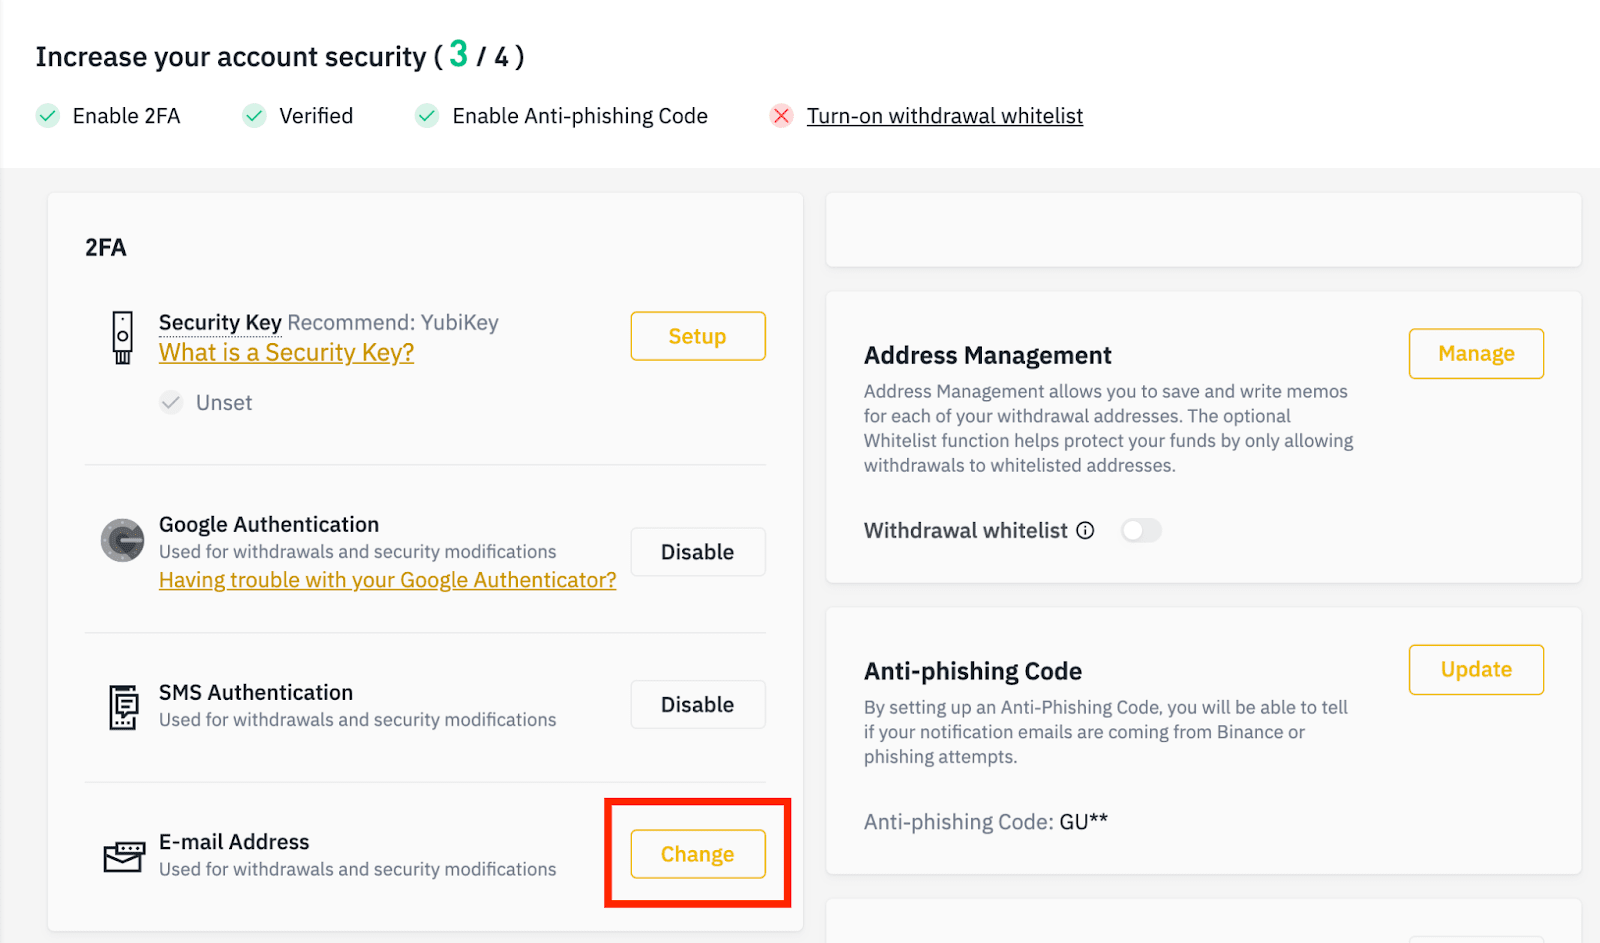 How to Open Account and Sign in to Binance